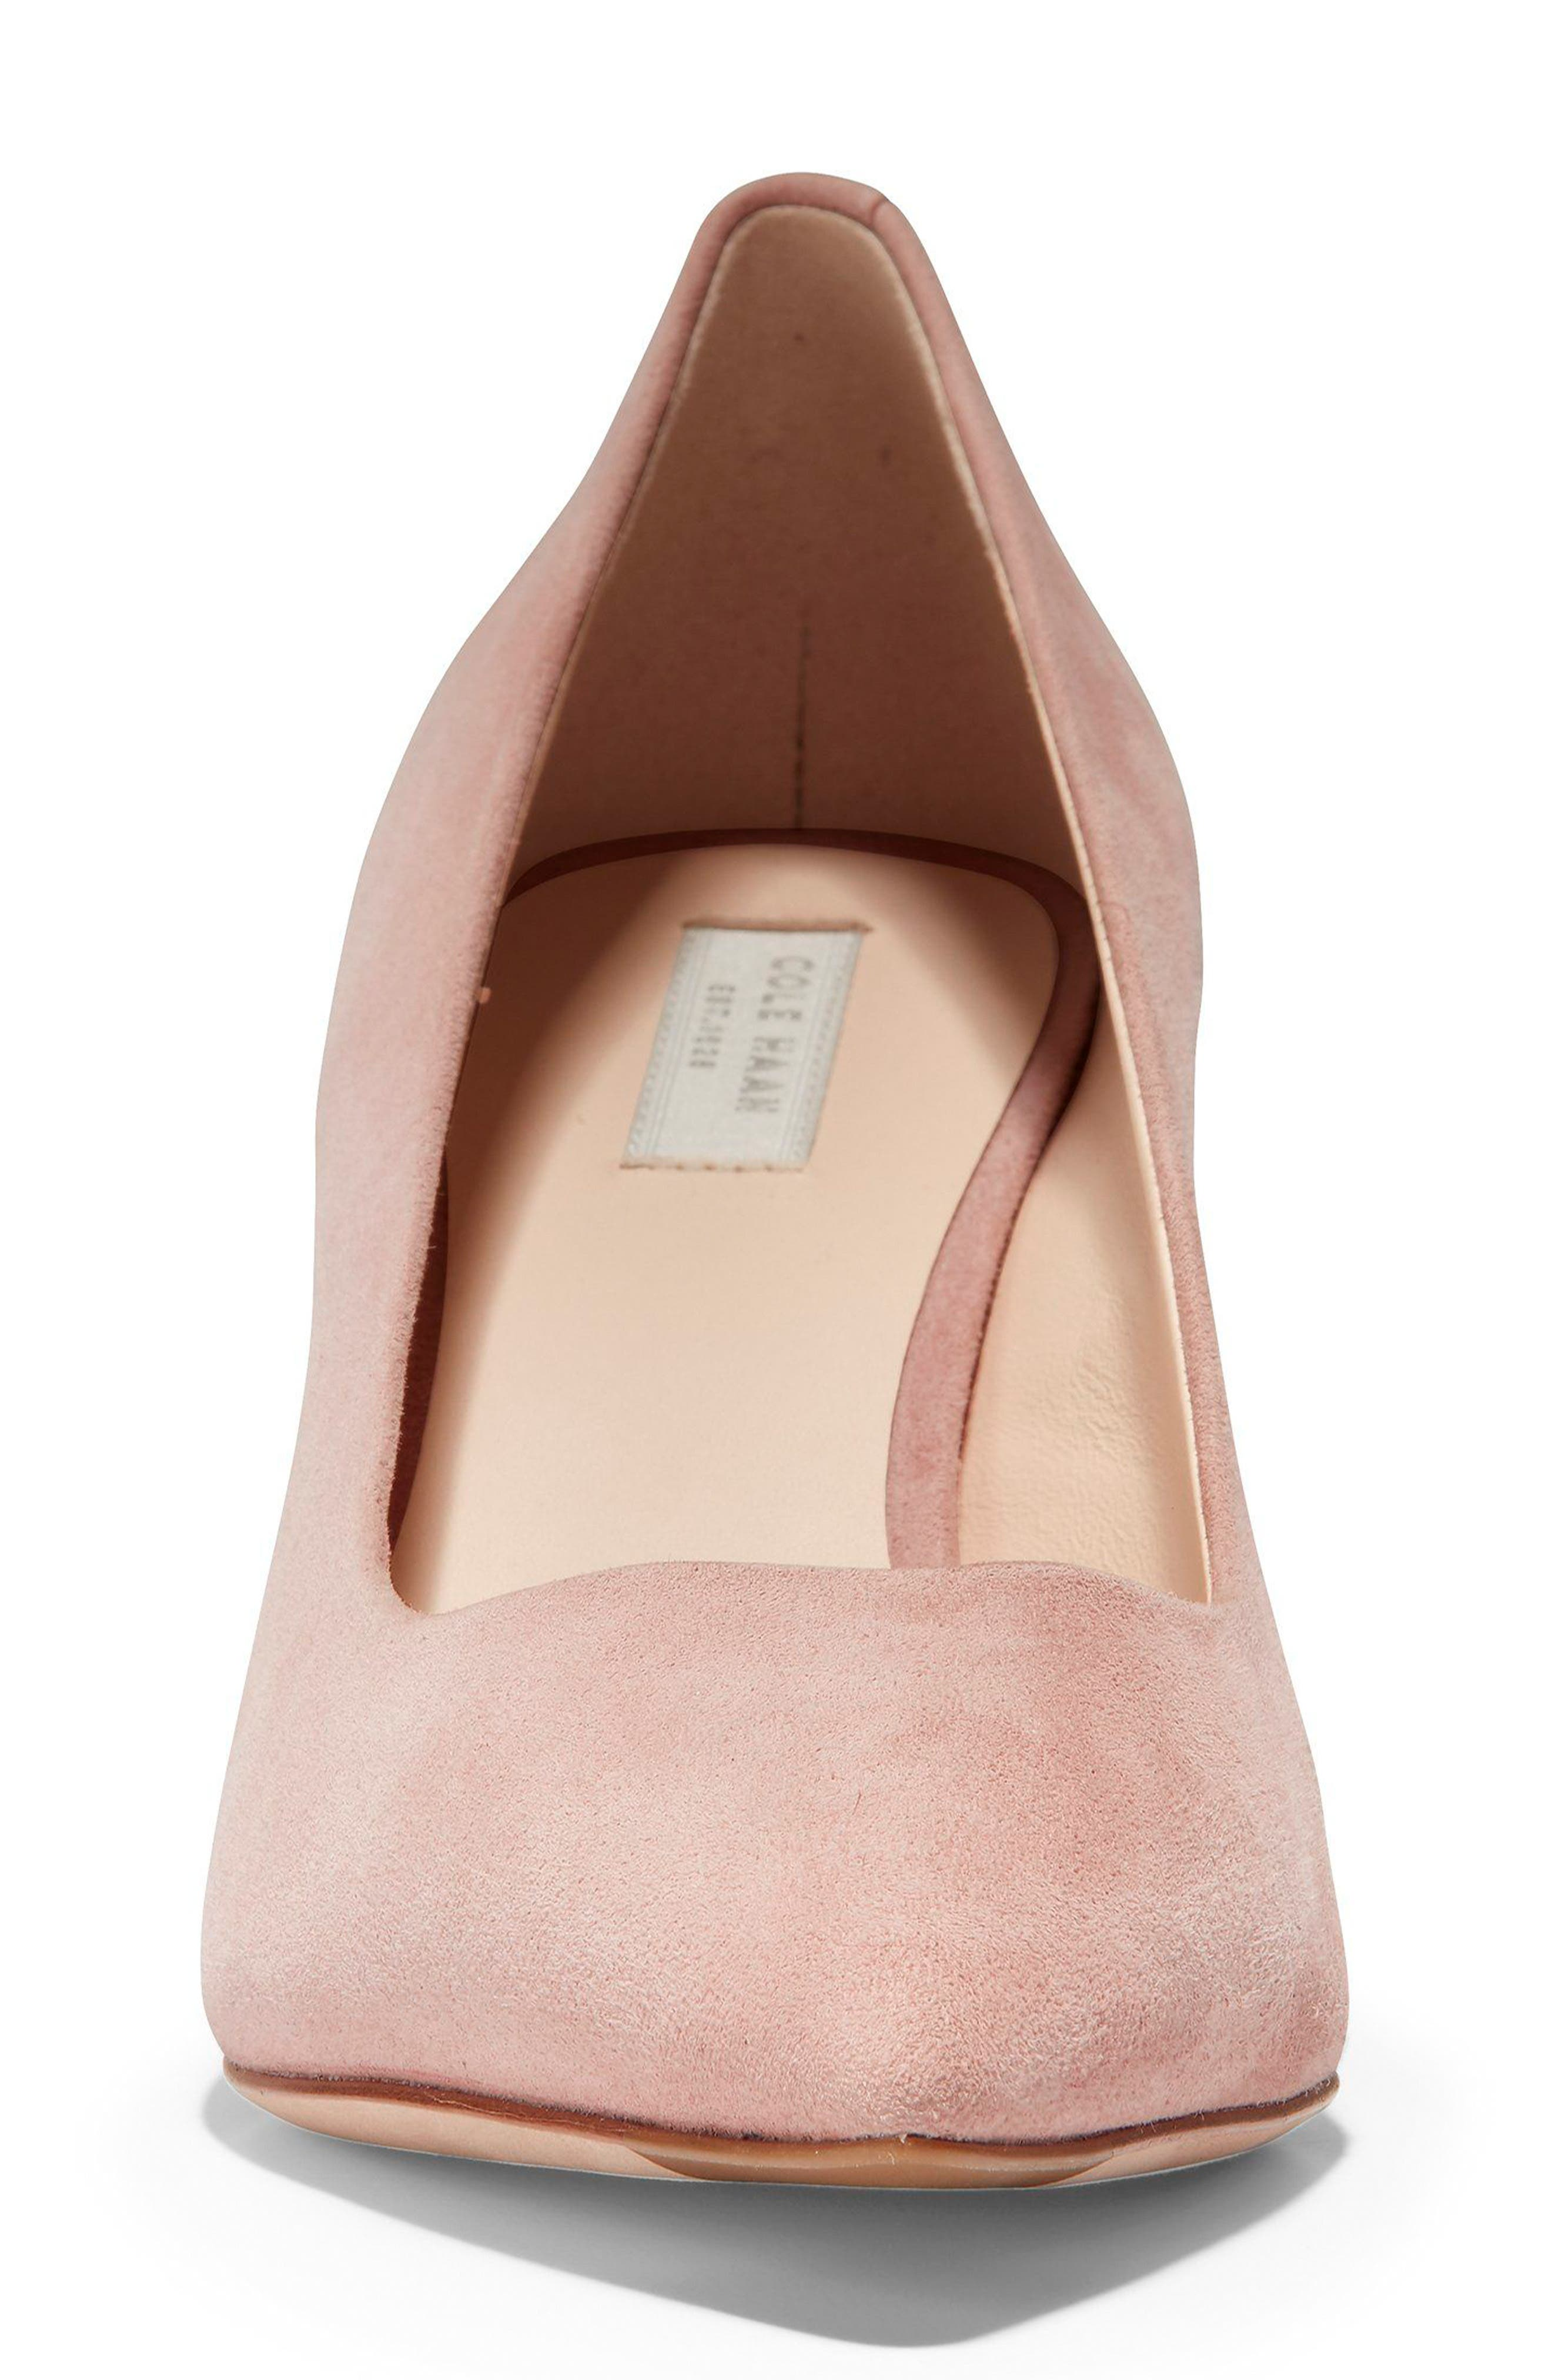 Vesta Pointy Toe Pump,                             Alternate thumbnail 4, color,                             SILVER PINK SUEDE